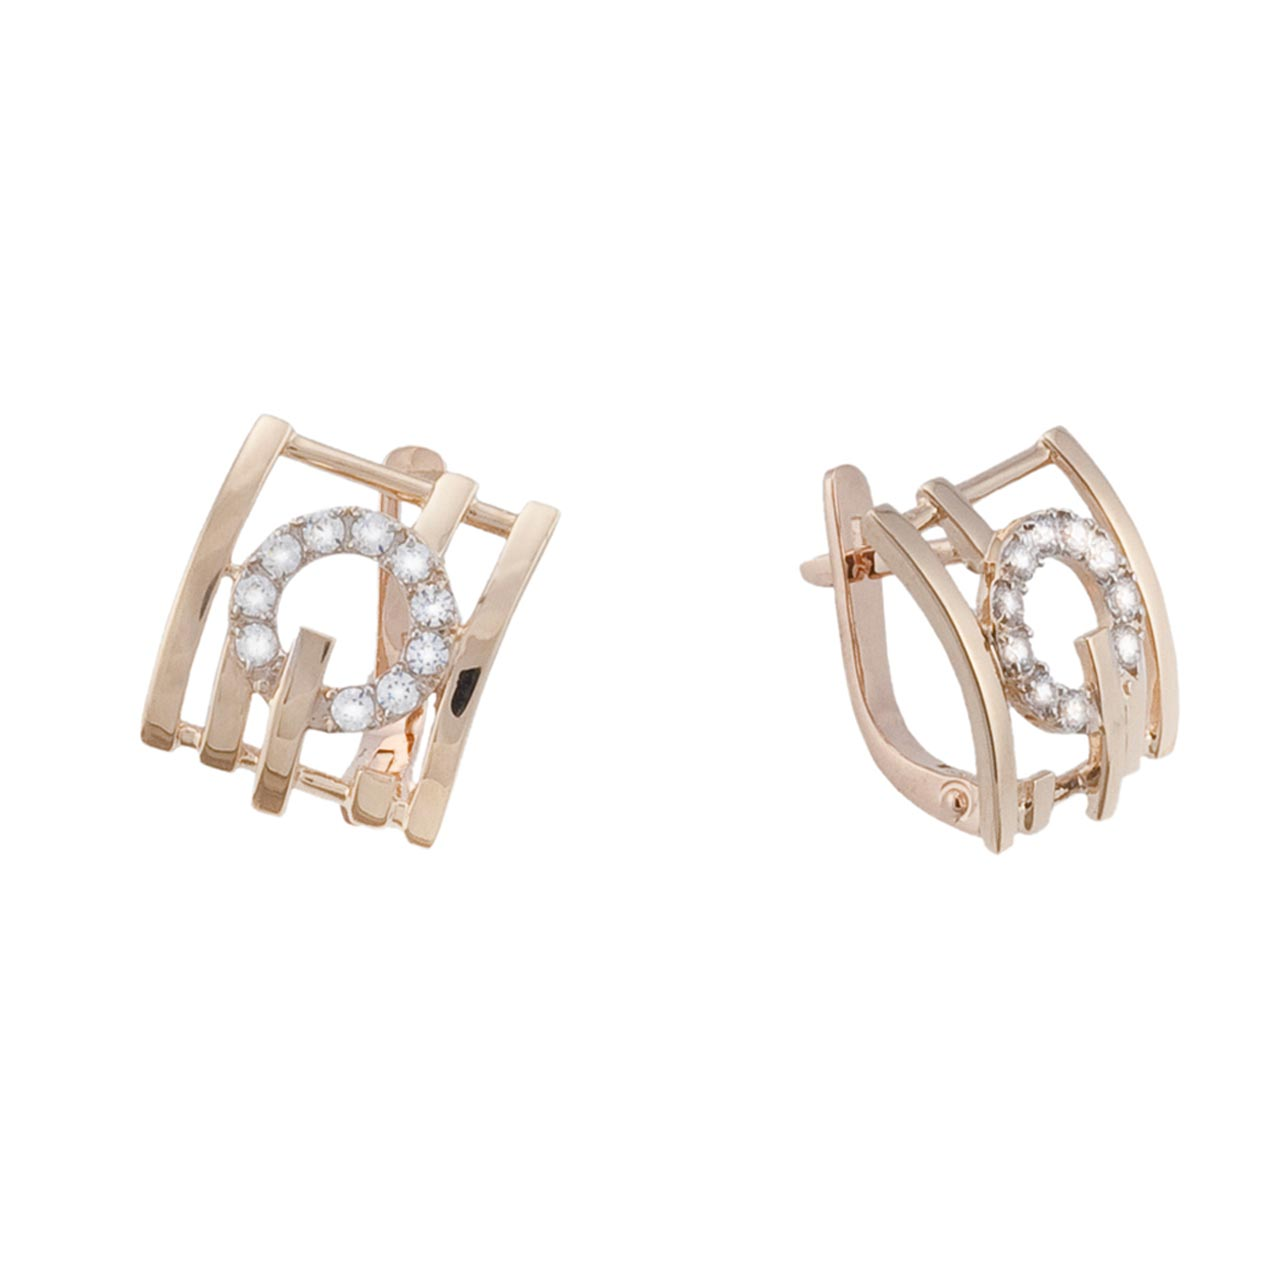 Rose gold earrings 1